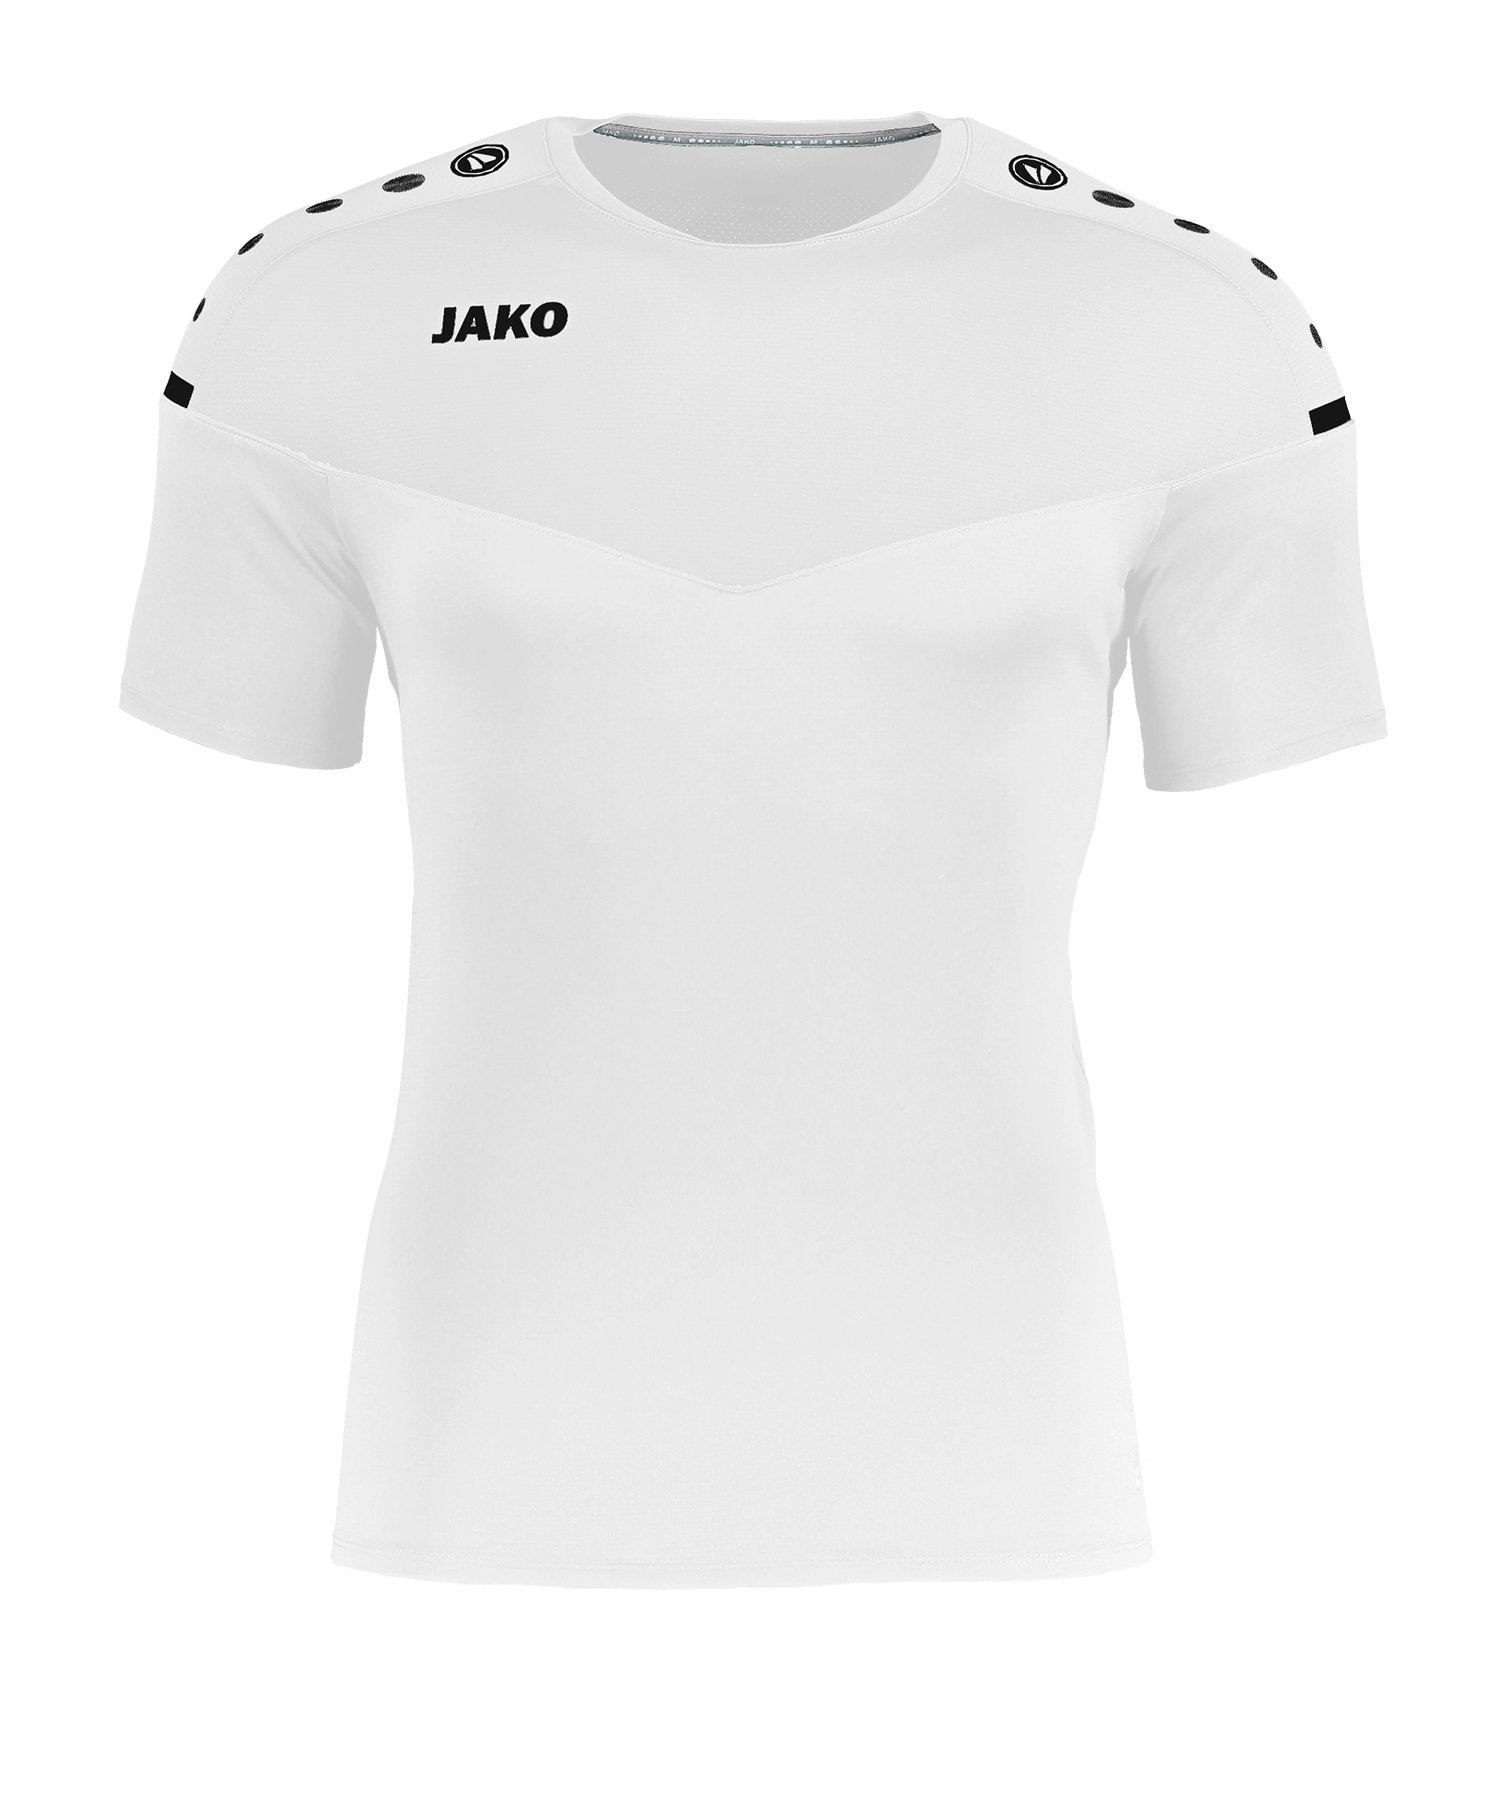 Jako Champ 2.0 T-Shirt Kids Weiss F00 - weiss